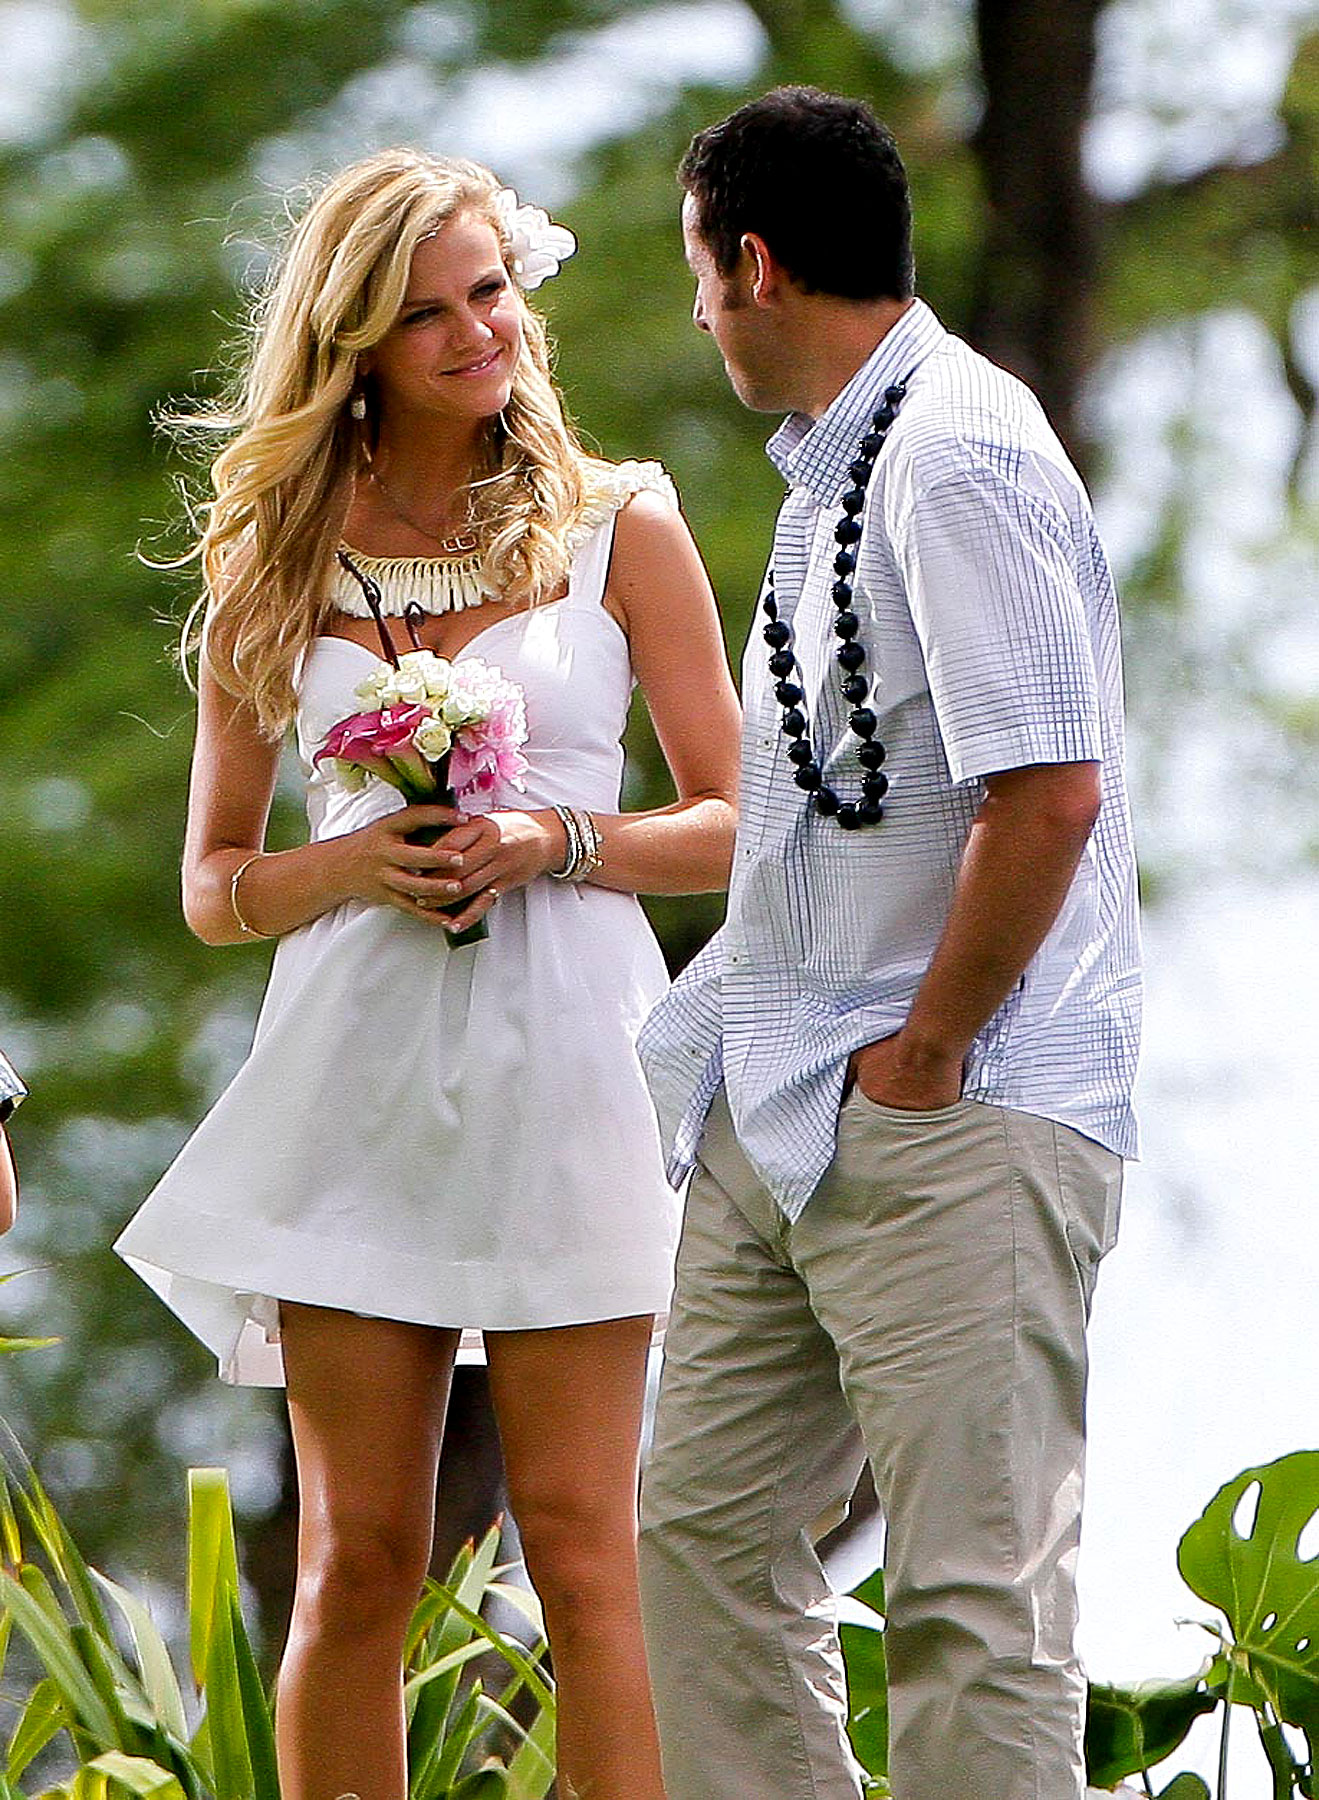 Adam Sandler Works Hollywood Magic, Marries Brooklyn Decker (PHOTOS)